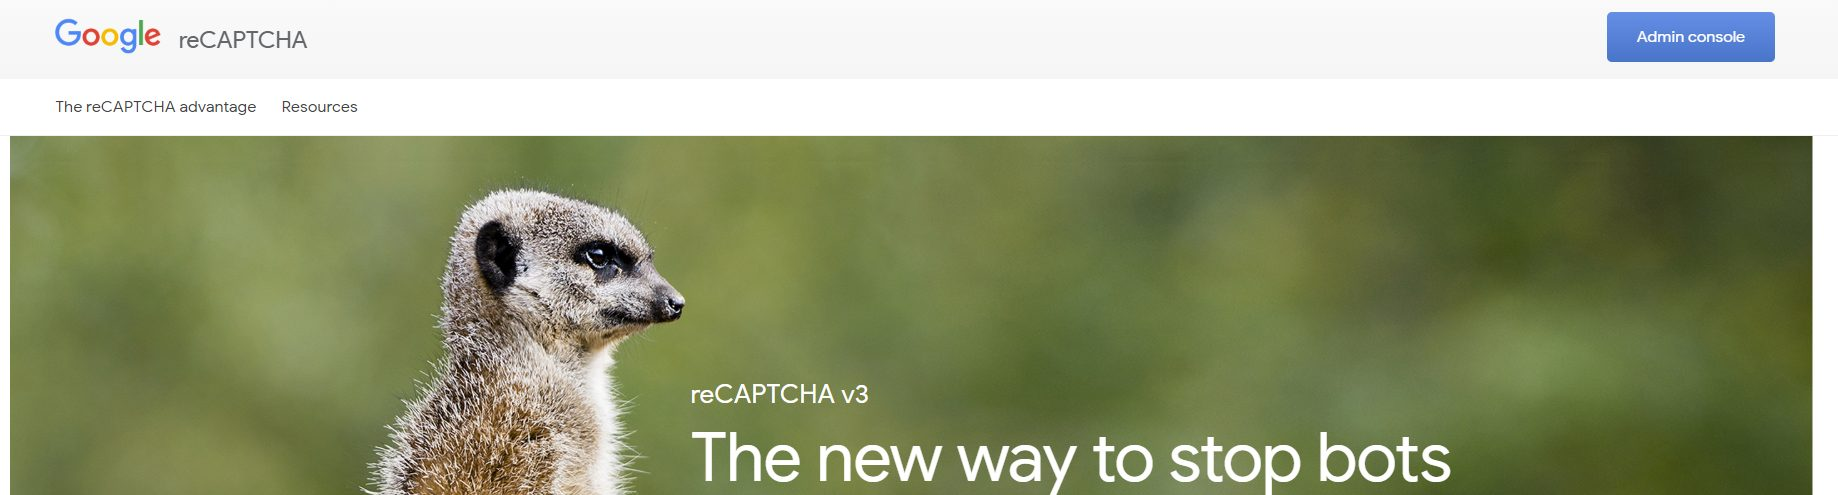 Registrar tu WordPress en Google reCAPTCHA